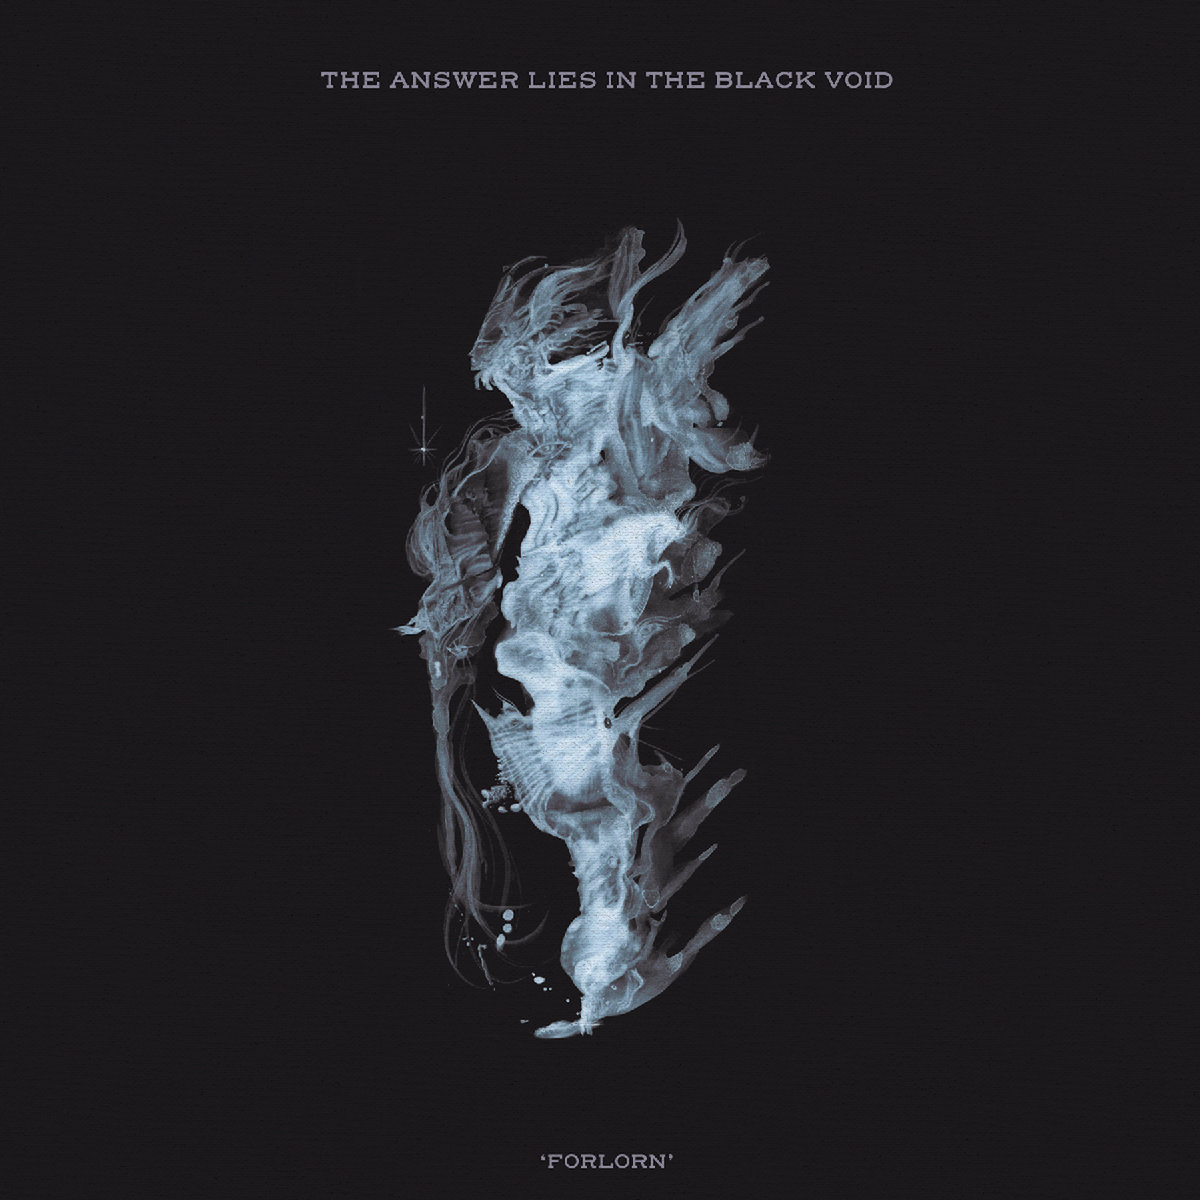 The Answer Lies in the Black Void Forlorn